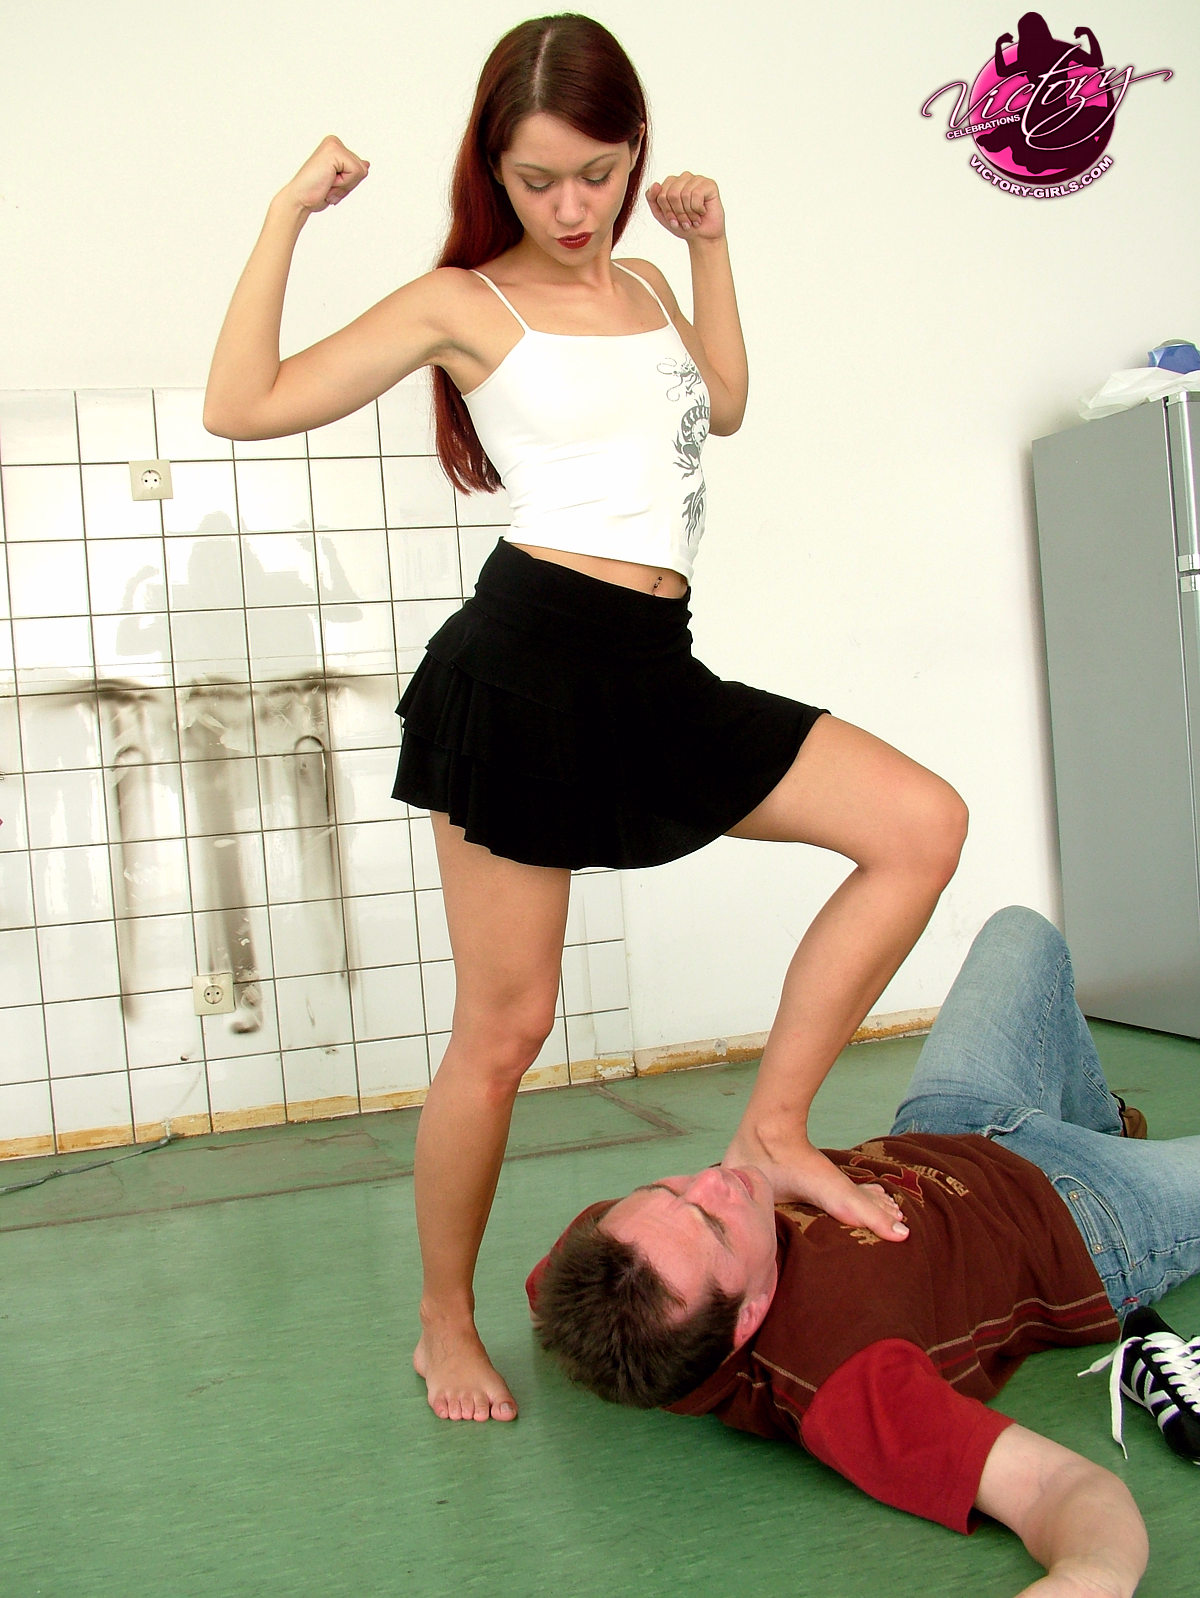 Femdom Mixed Wrestling Victory Pose